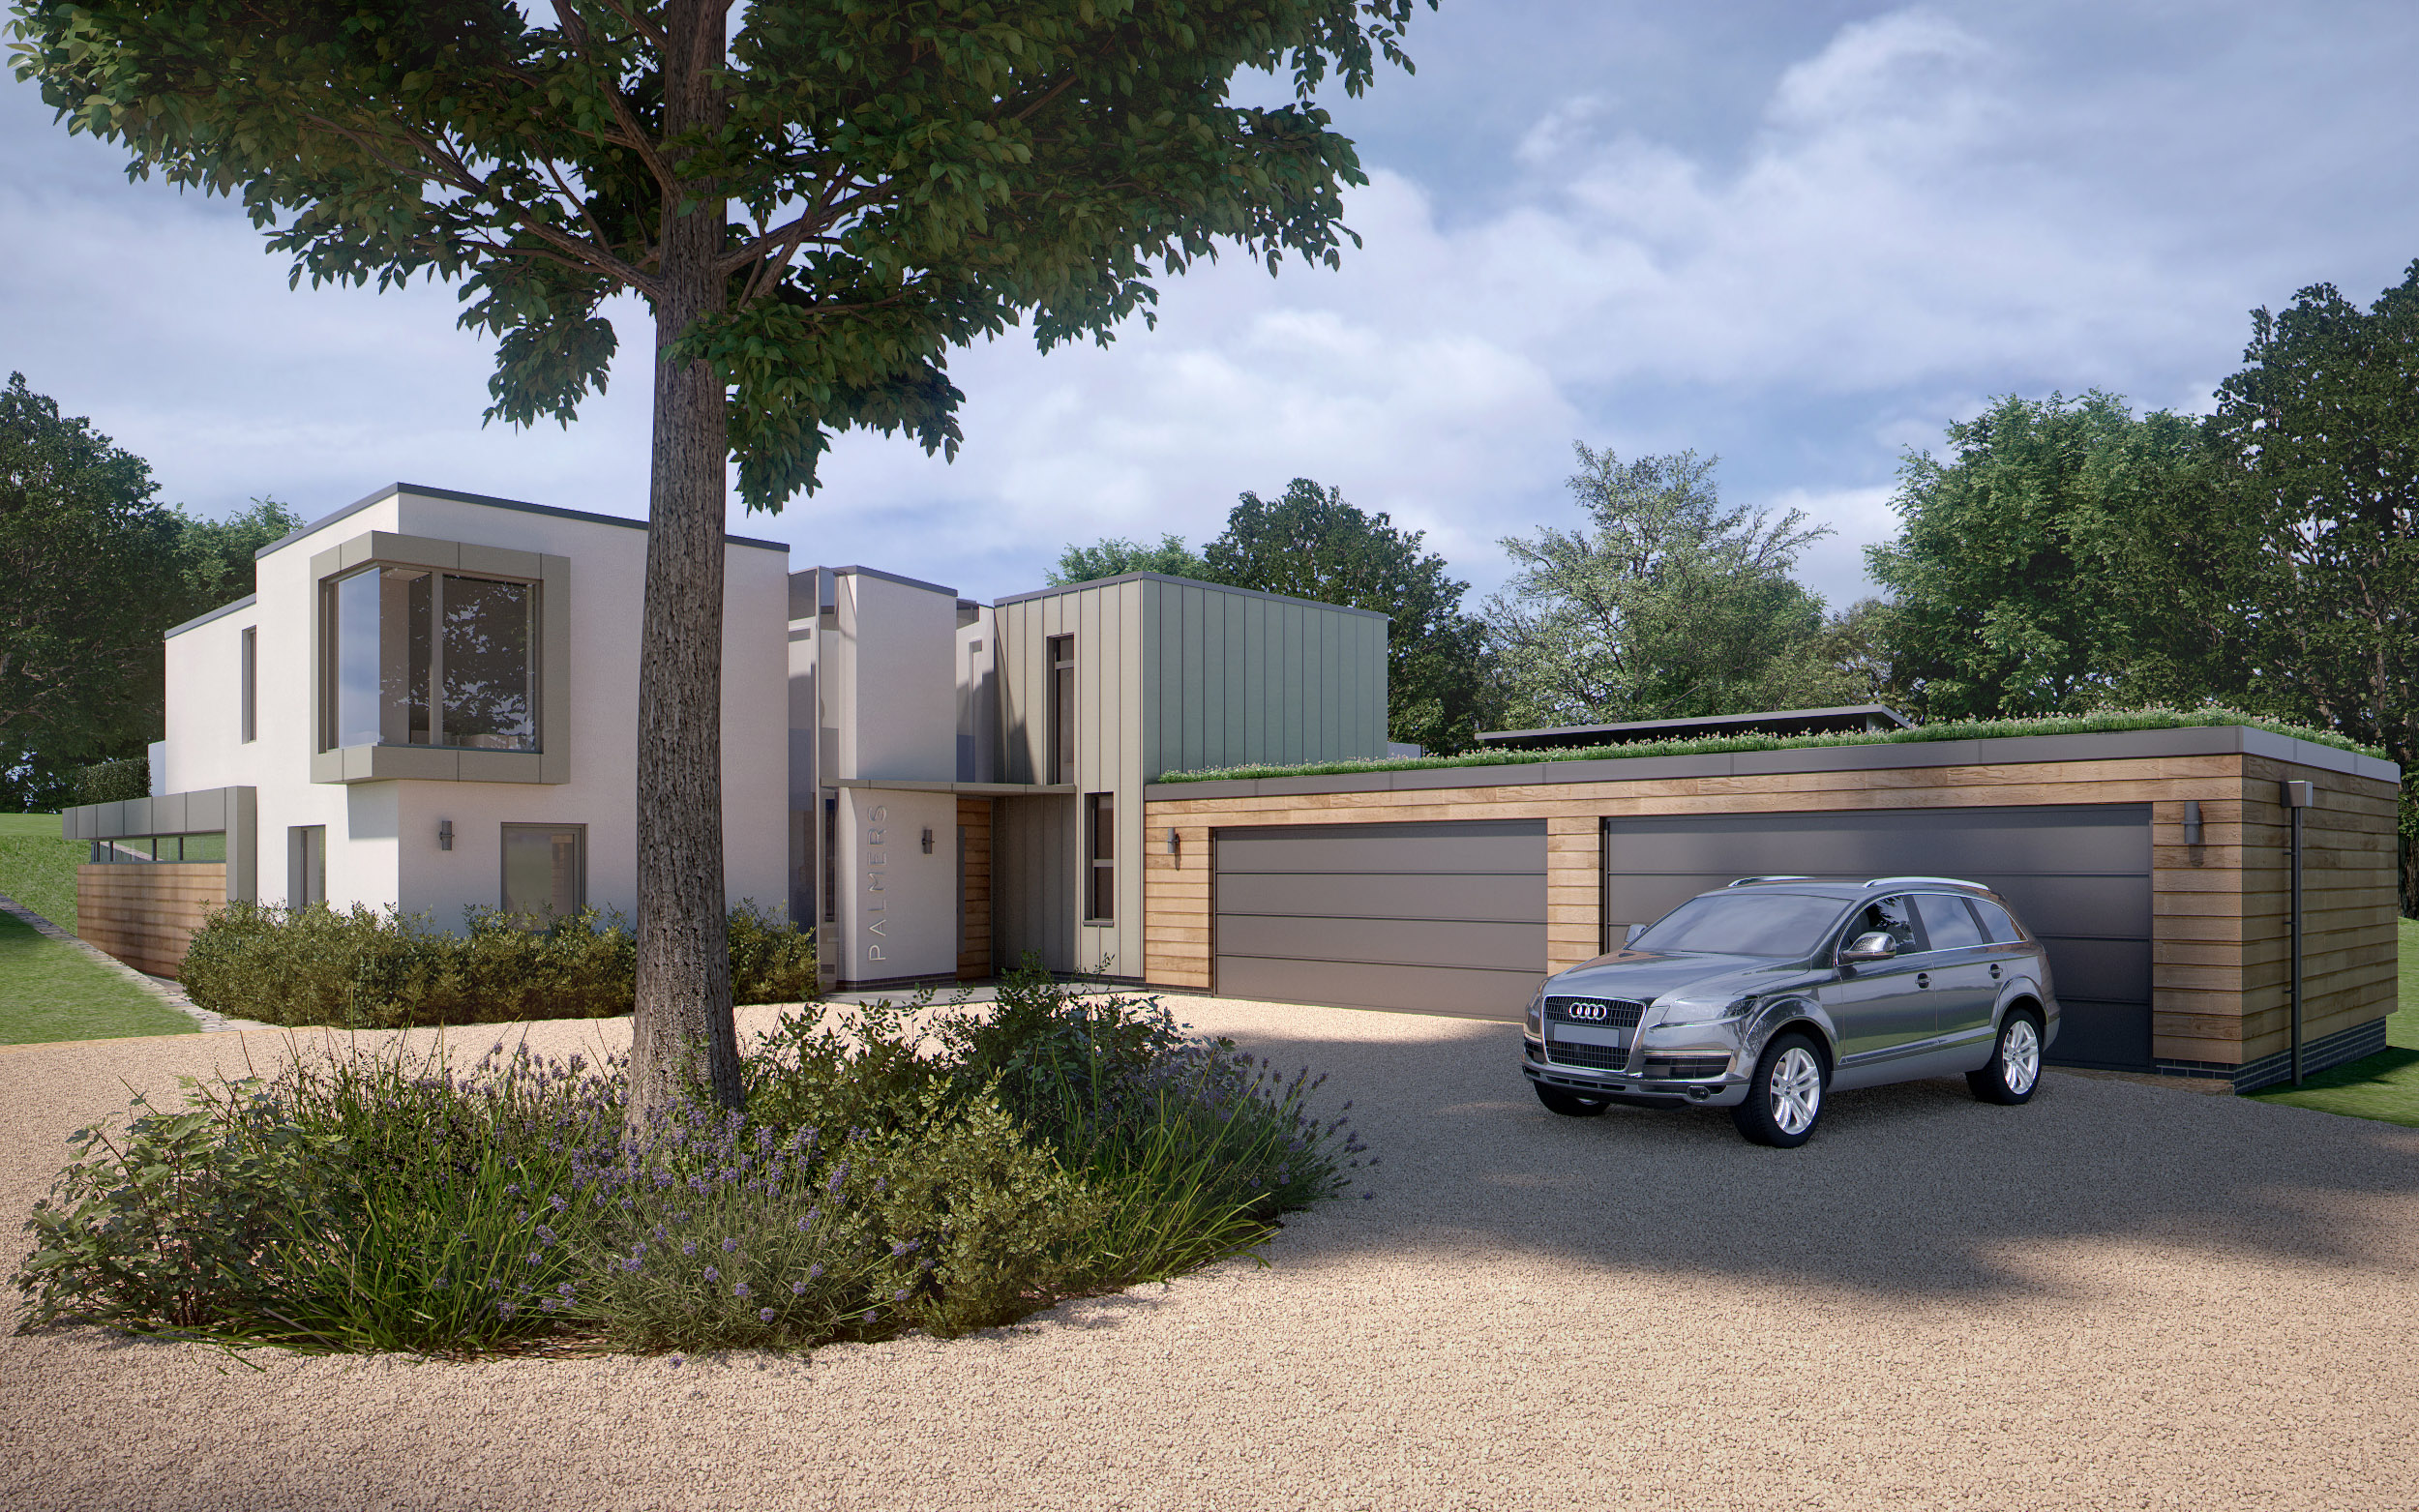 Residential architect Inspiration Architects Inspiration were asked to design a new contemporary style home in the extensive grounds of the clients' existing house. Front of completed property.